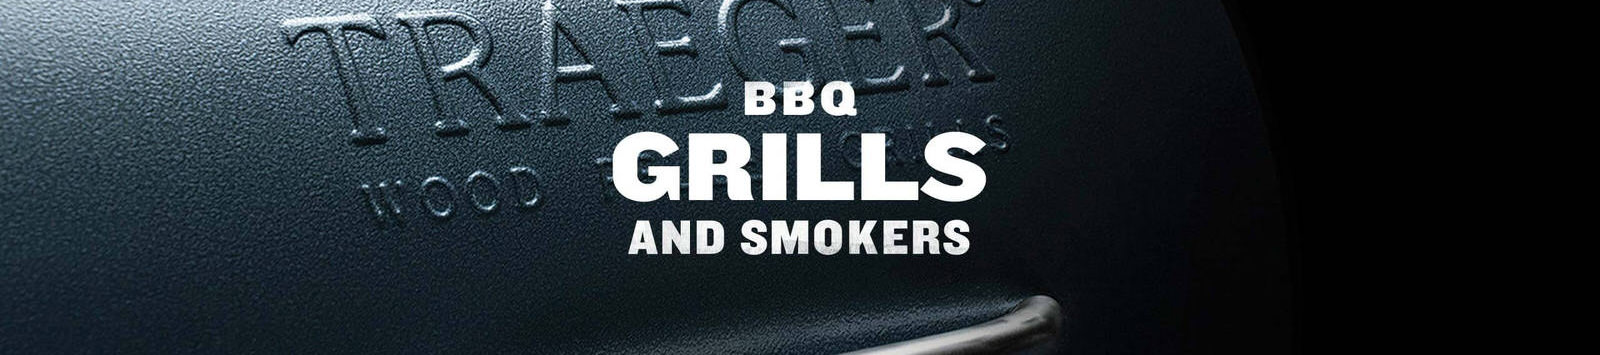 BBQ Grills & Smokers